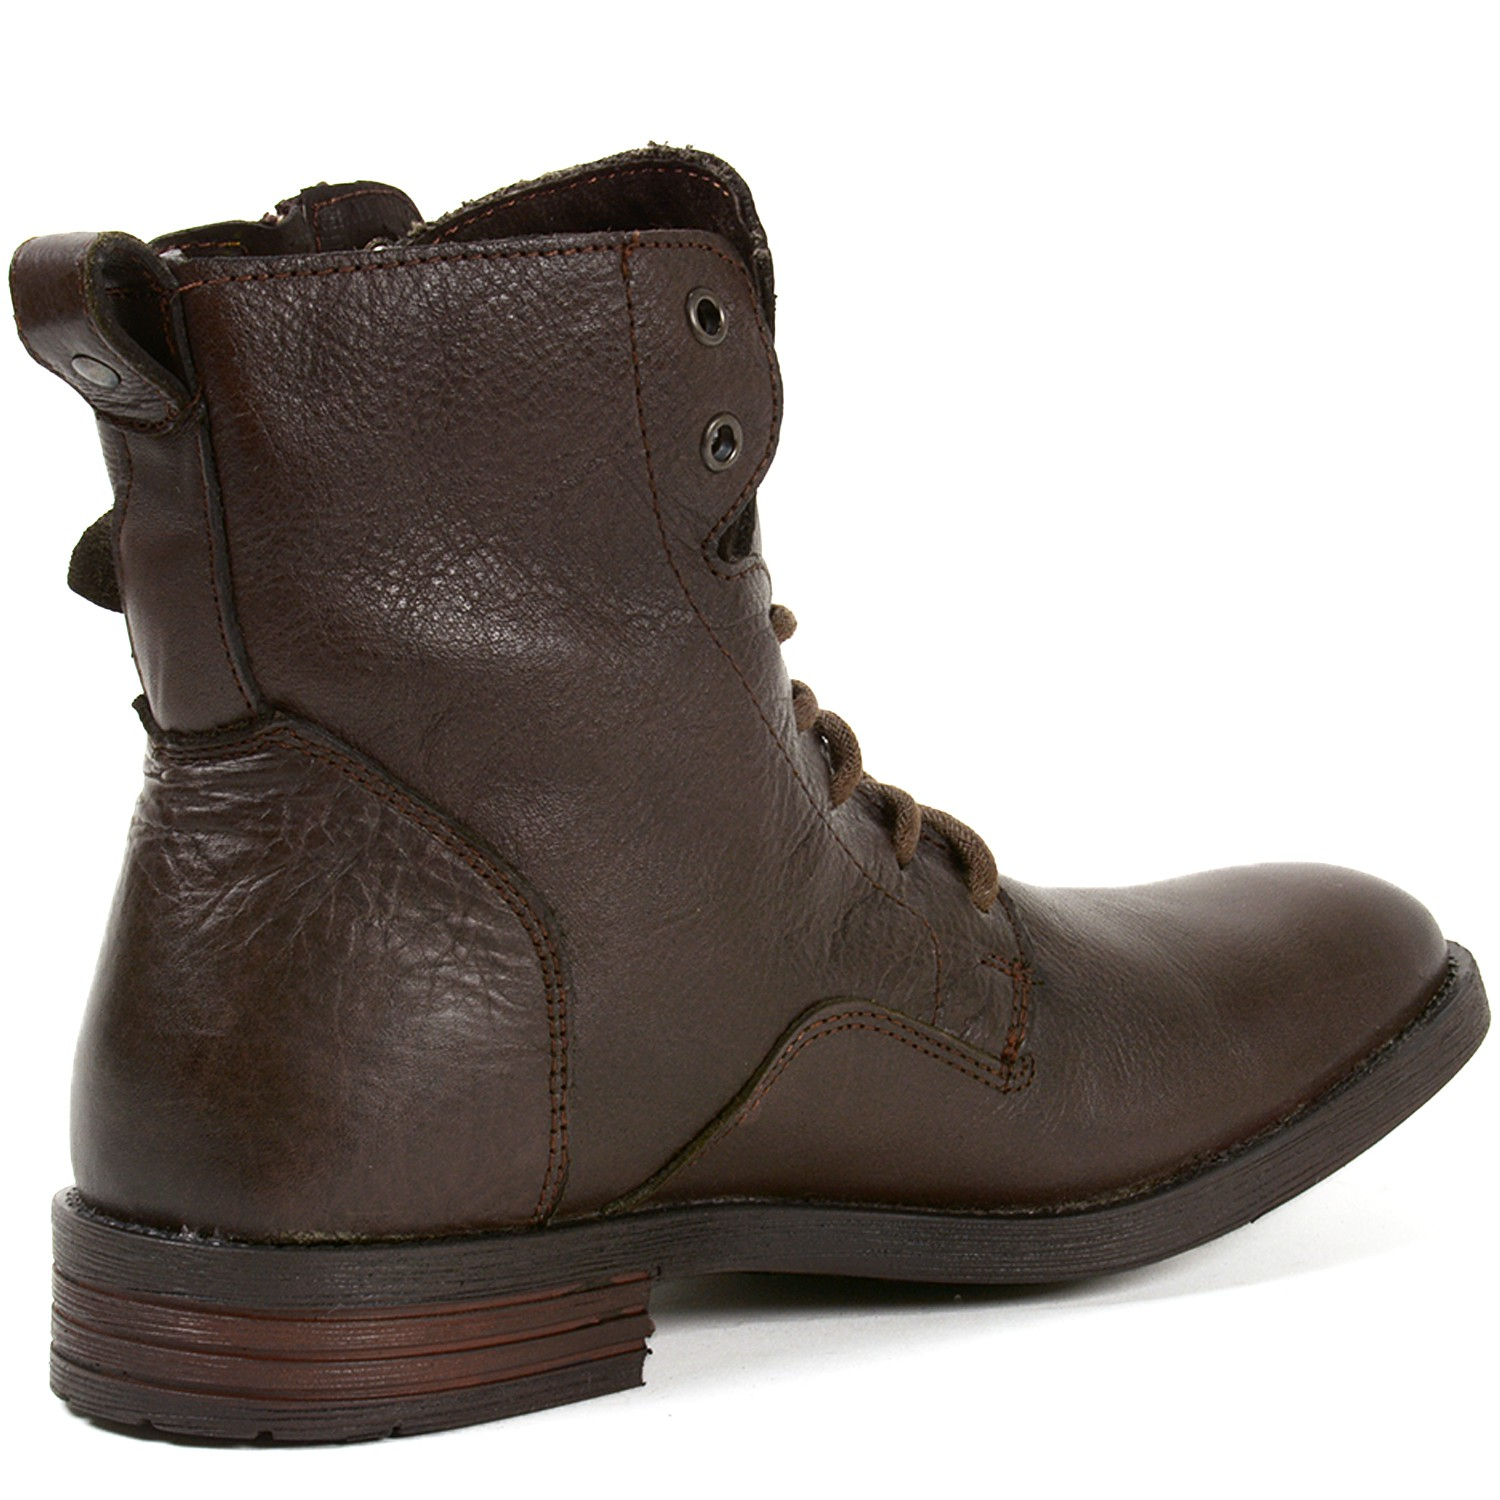 gbx mens trust leather boots combat style lace up